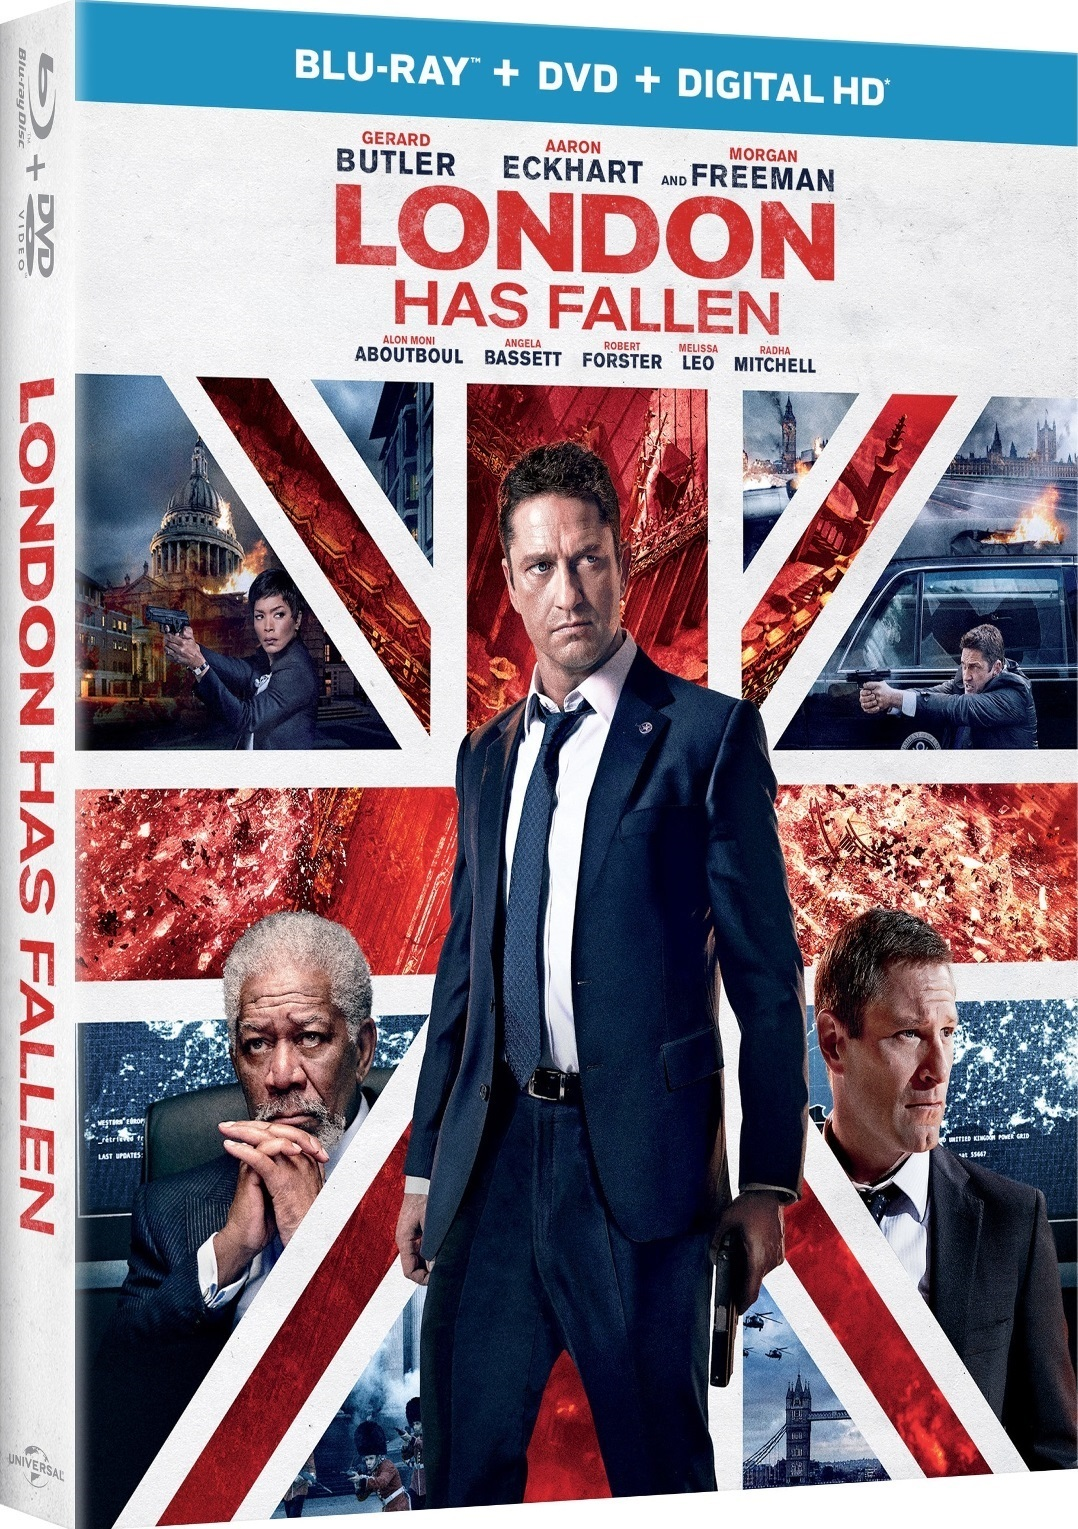 London Has Fallen's Digital Giveaway Fuel Protection of World Leaders